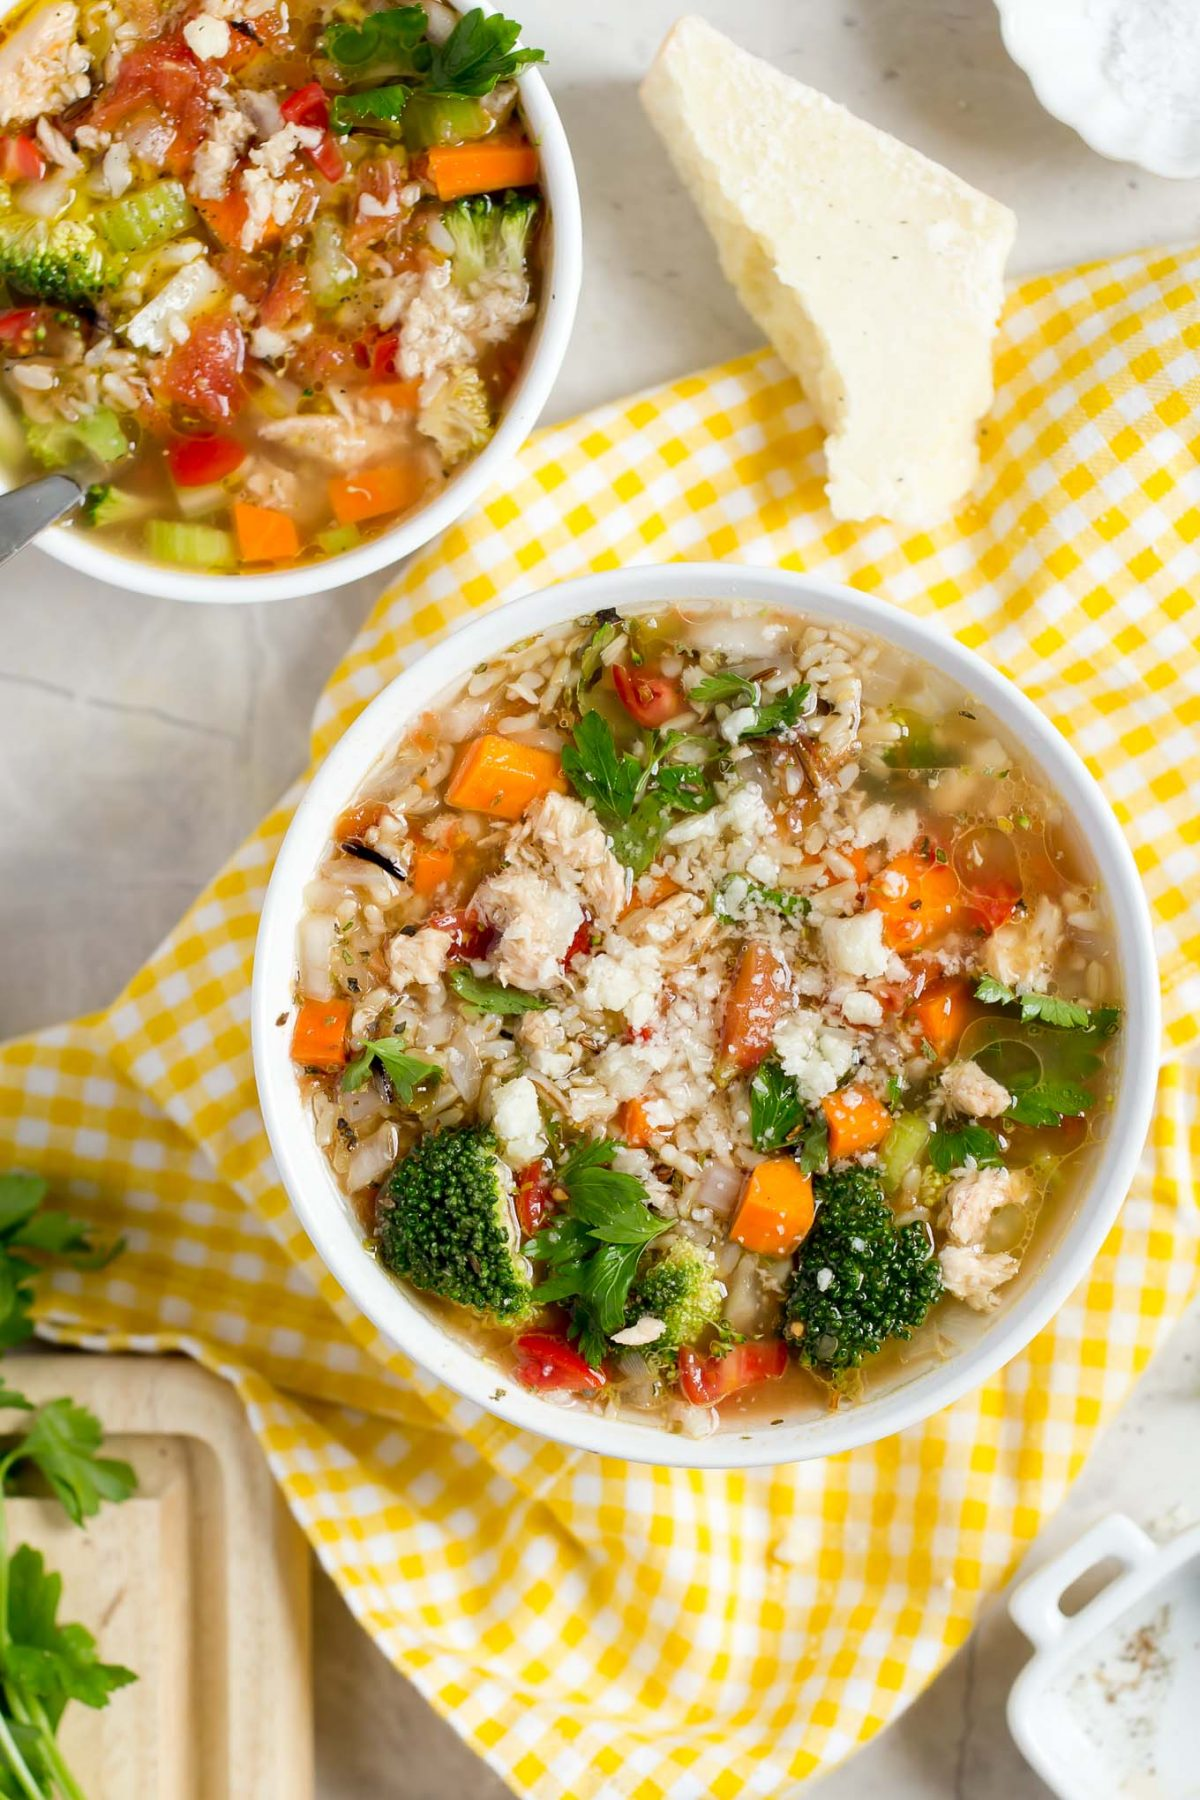 Hearty Salmon and Wild Rice Soup in a Hurry - A comforting, wholesome, and hearty soup with broccoli, onion, celery, carrot, salmon, and brown and wild rice in 30 minutes!